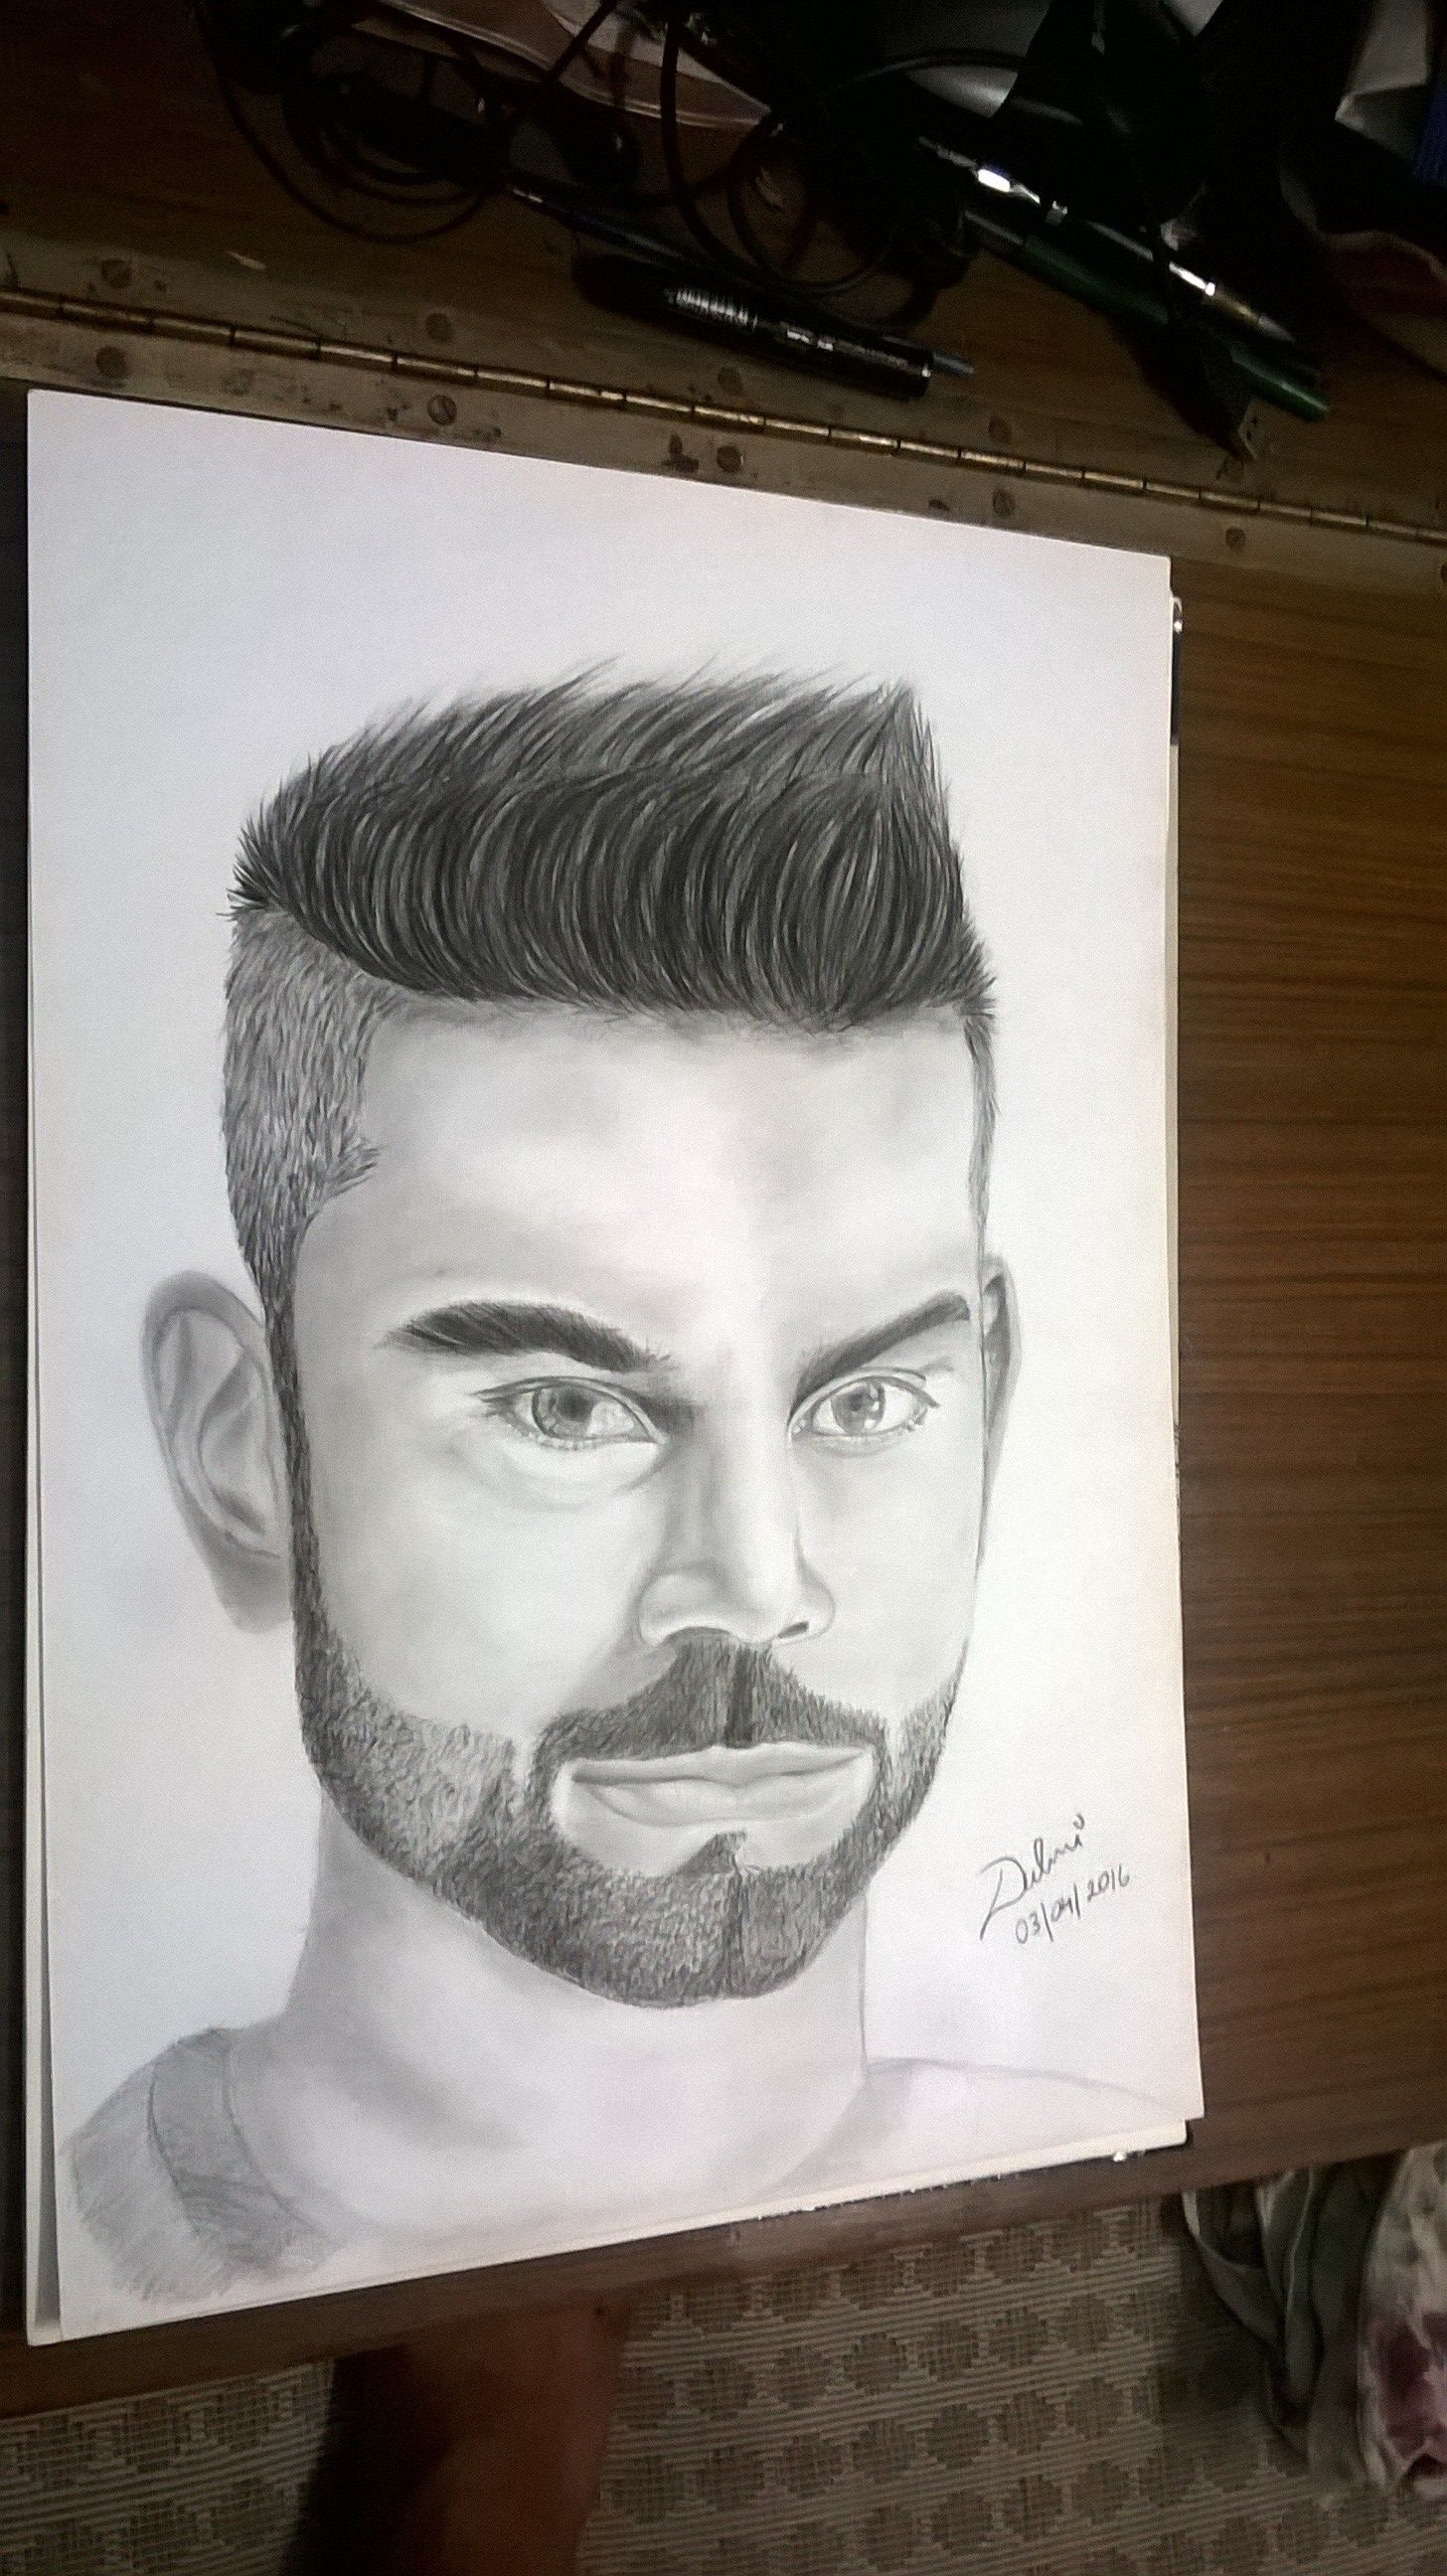 Virat kohli virat kohli drawing virat kohli sketch virat kohli portrait virat kohli artwork contact me for art and design related stuff charcoal